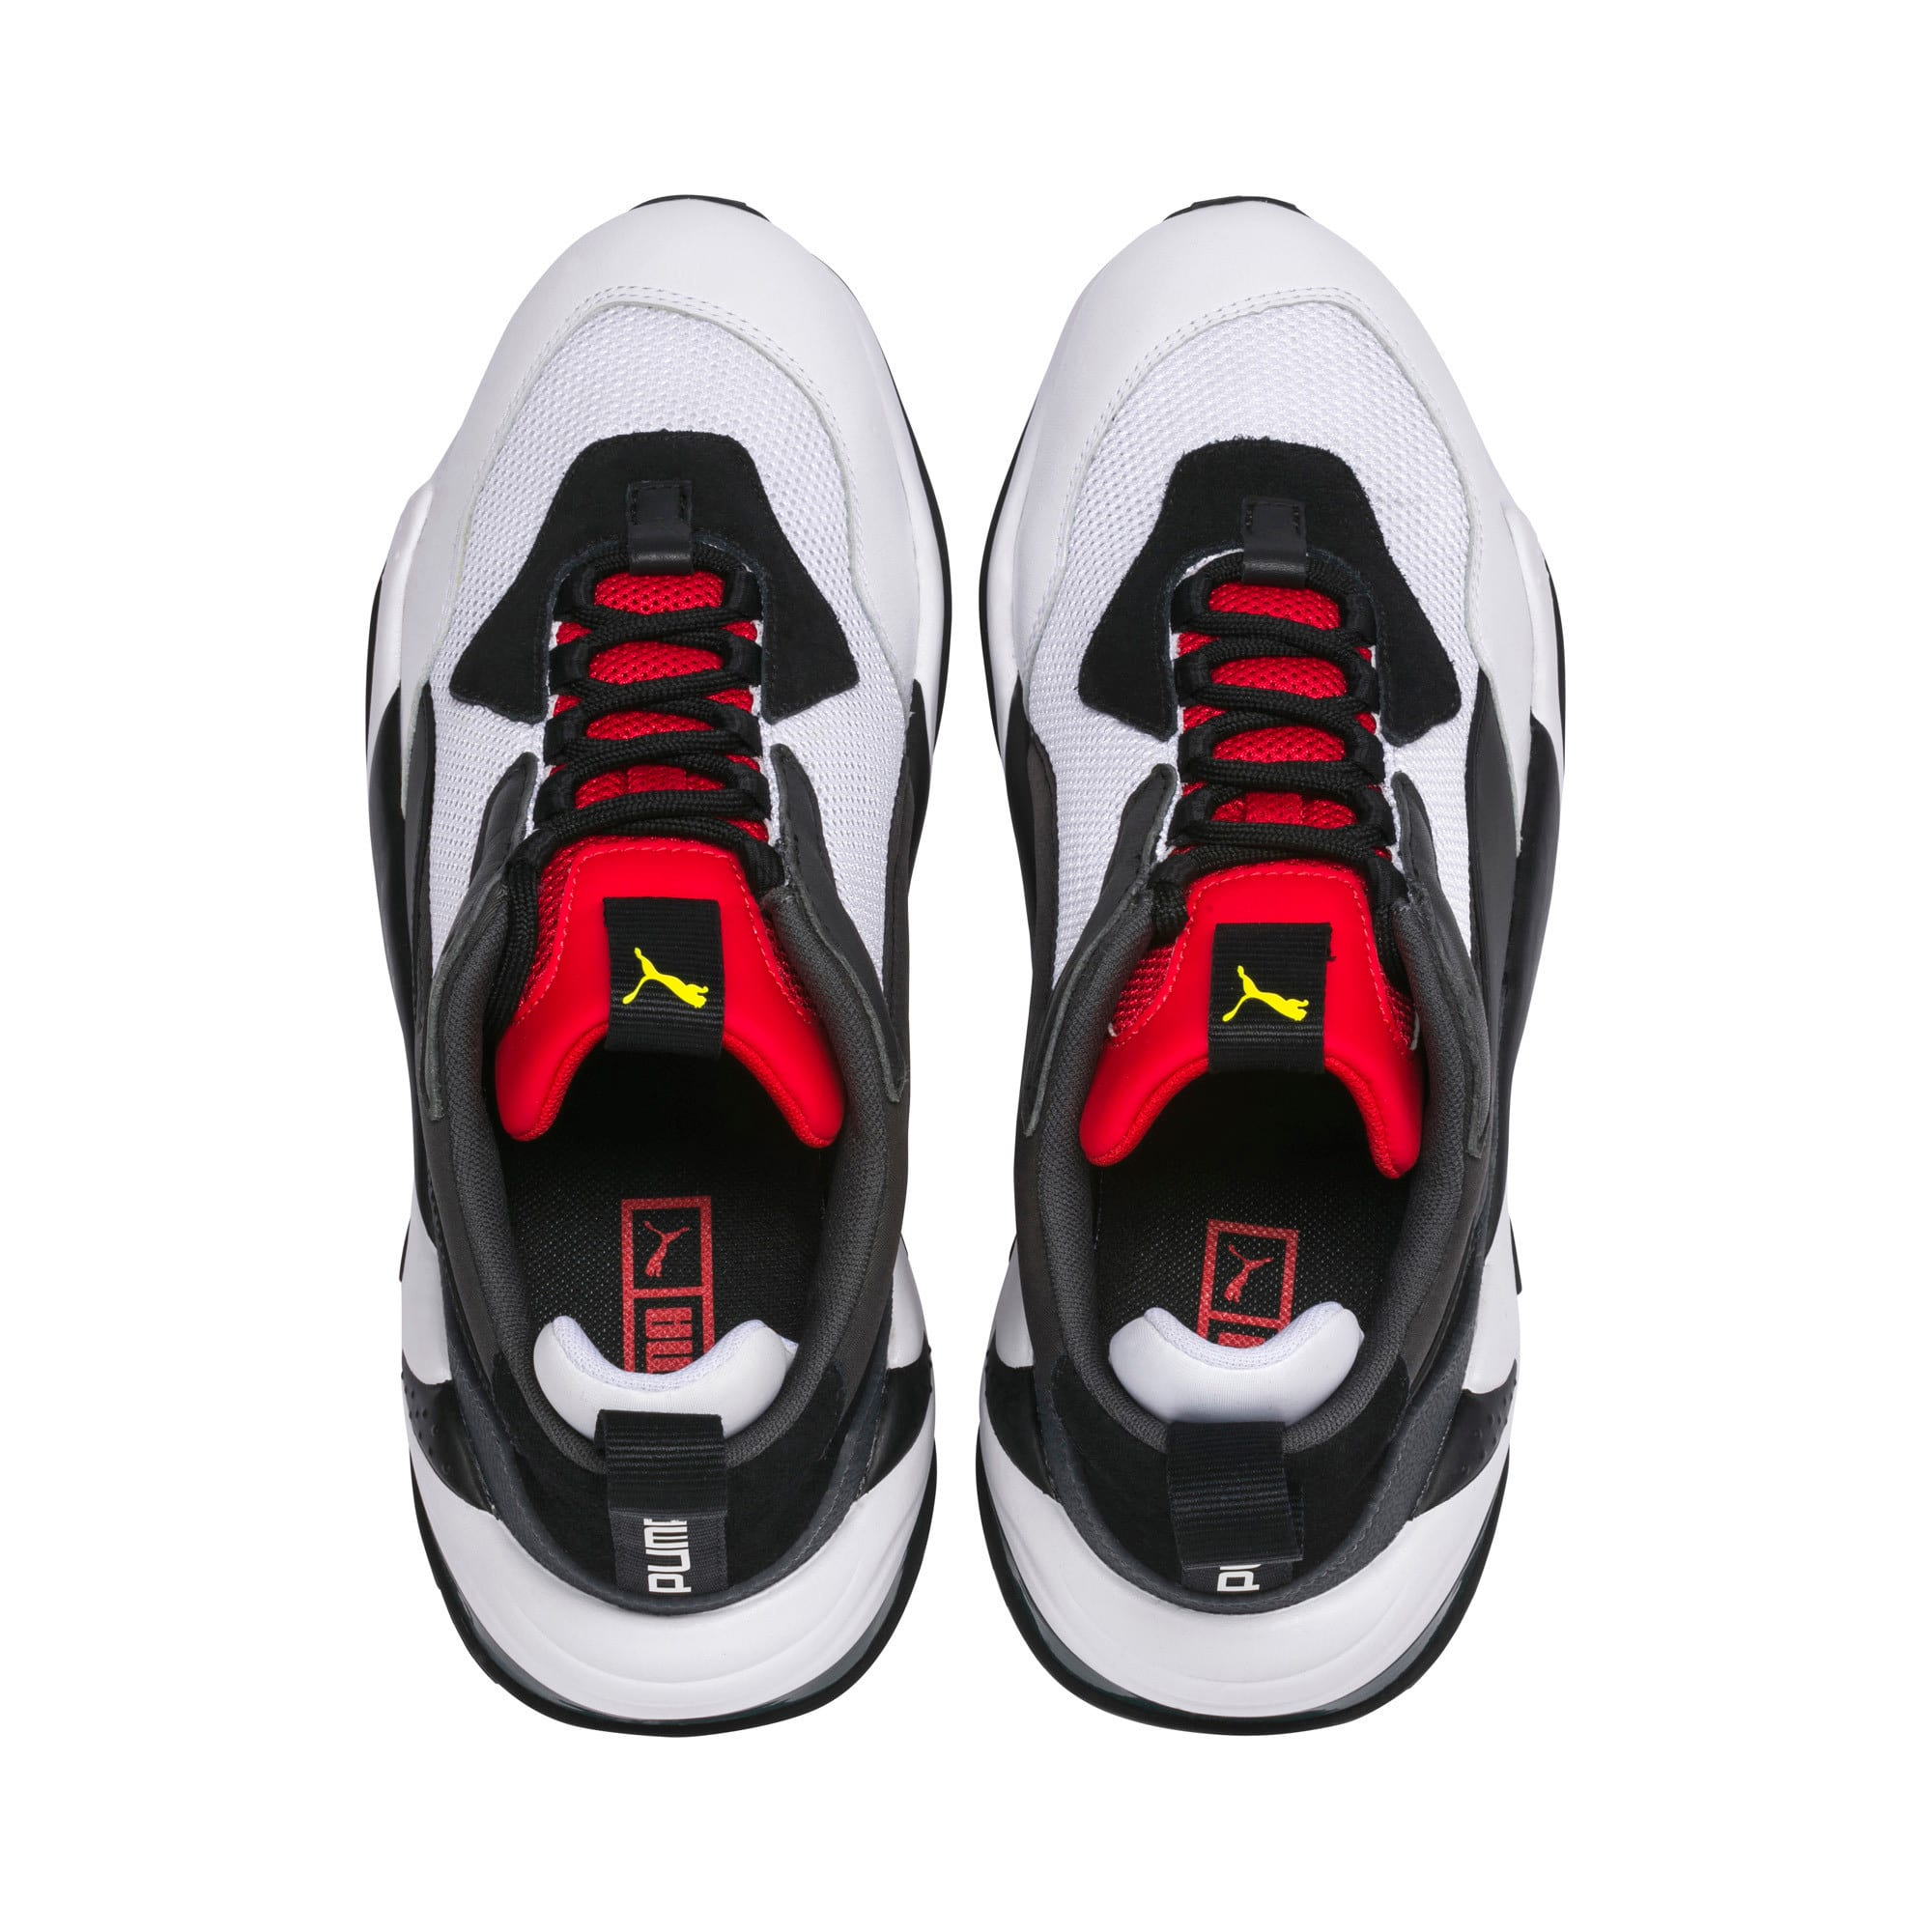 Thumbnail 6 of Thunder Spectra Sneakers, Puma Black-High Risk Red, medium